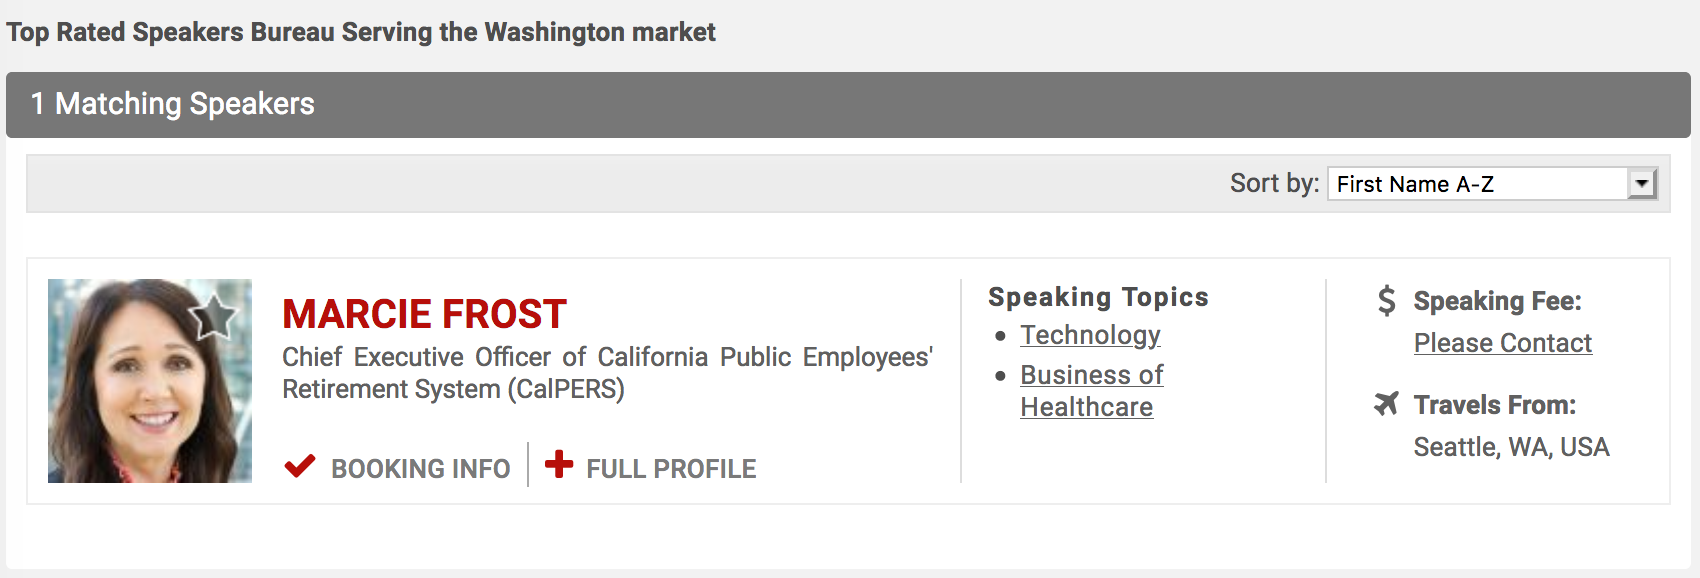 CalPERS CEO Marcie Frost Moonlights? Implausibly Denies Relationship With Top Speakers' Bureau 2